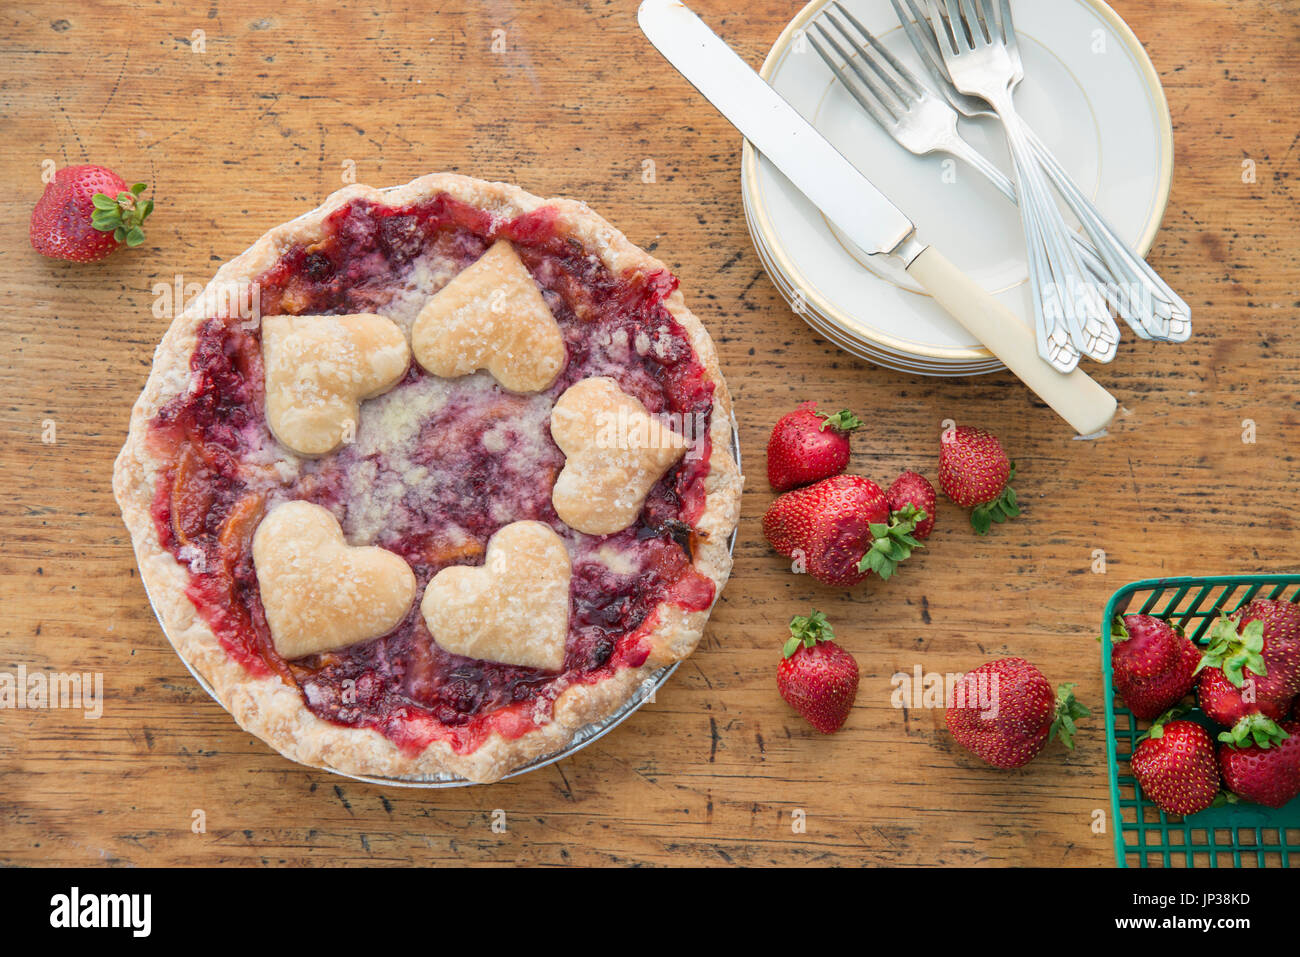 Heart shaped dough on berry pie ready to serve - Stock Image